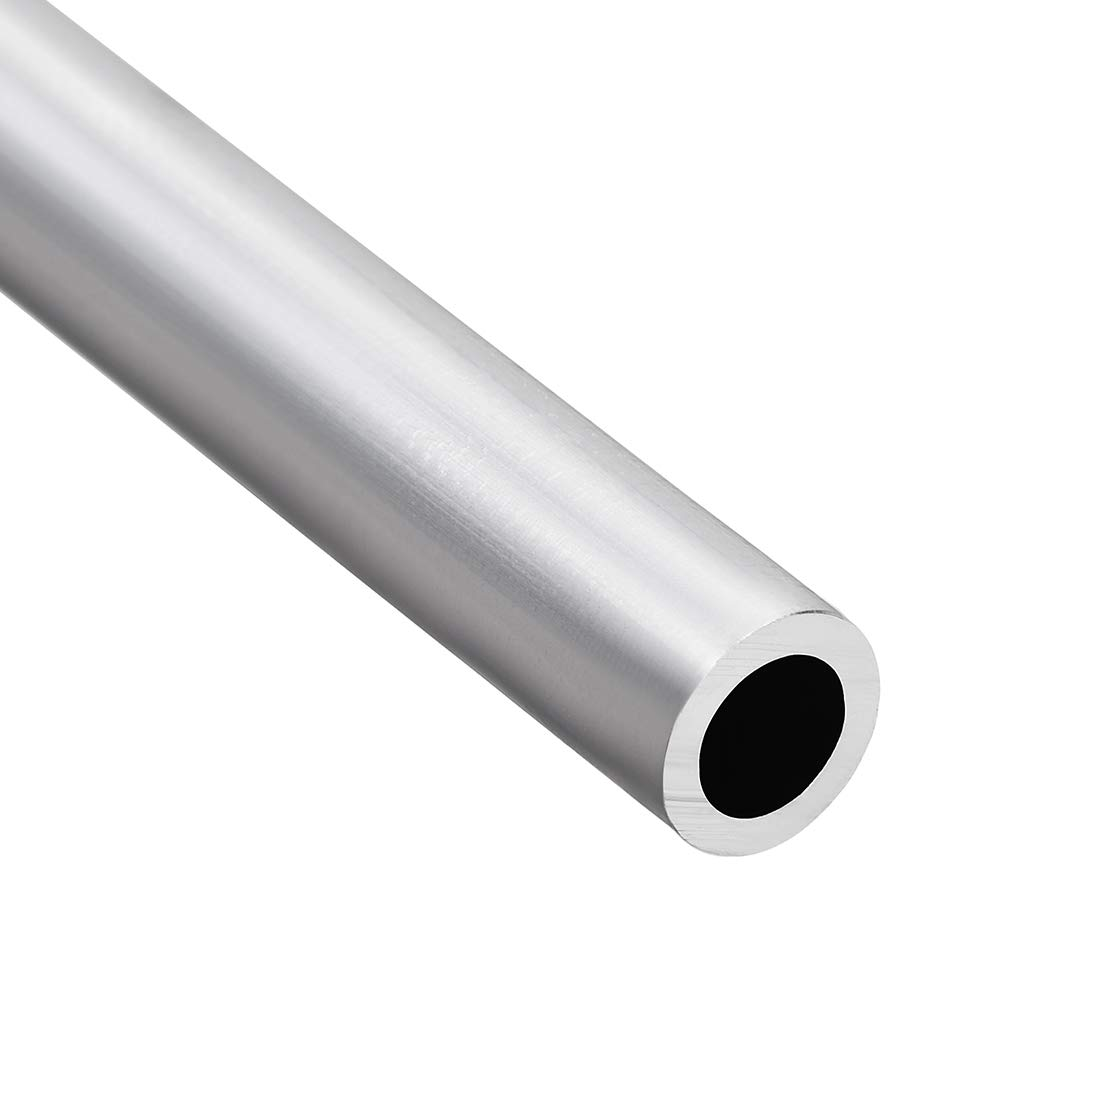 uxcell 2Pcs 6063 Seamless Aluminum Round Straight Tubing Tube 1 Feet Length 0.234 Inches ID 0.351 Inches OD